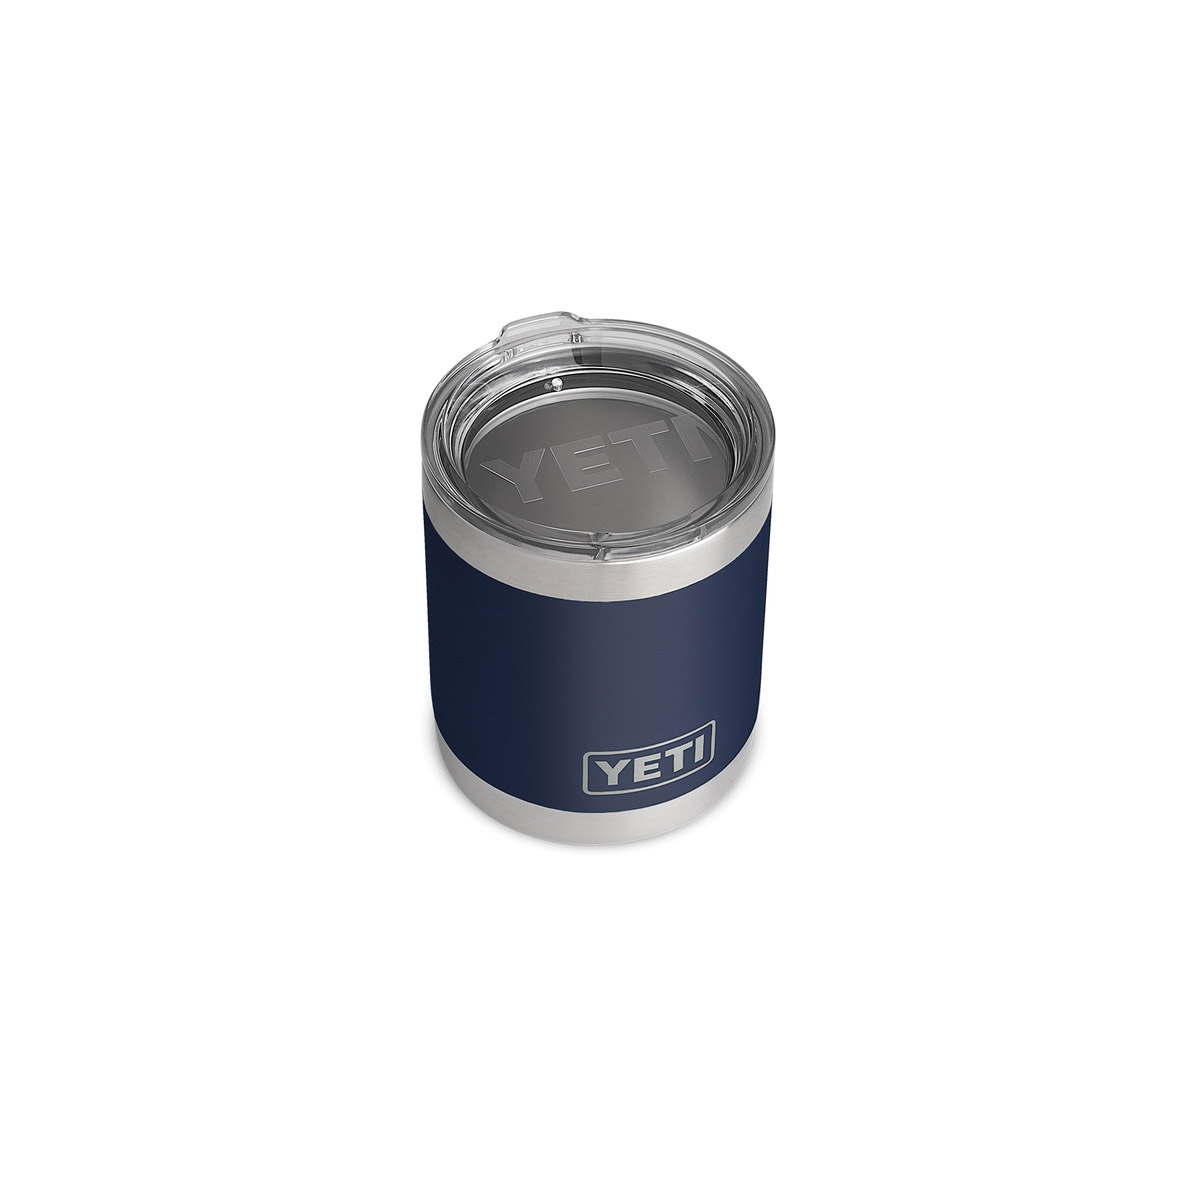 Picture of YETI Rambler 21071010016 Wine Tumbler, 10 oz Capacity, Stainless Steel, Navy, Insulated, 1